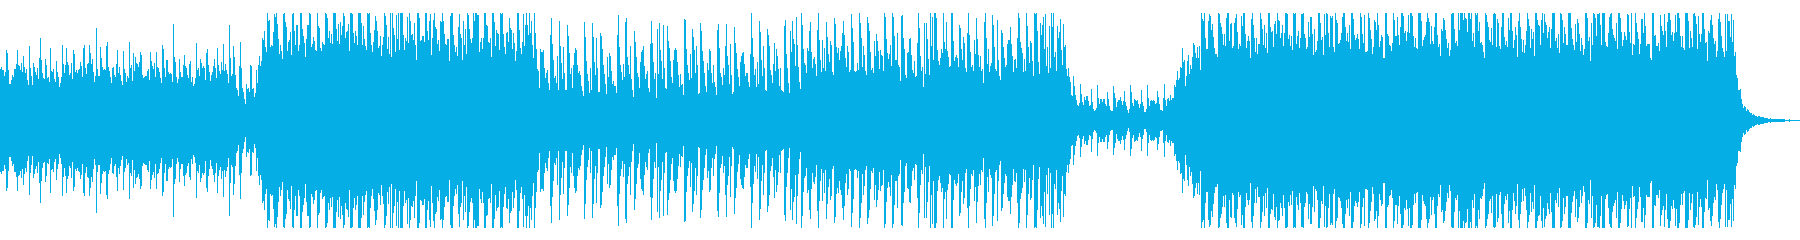 Expectations of JPOP-style BGM's reproduced waveform